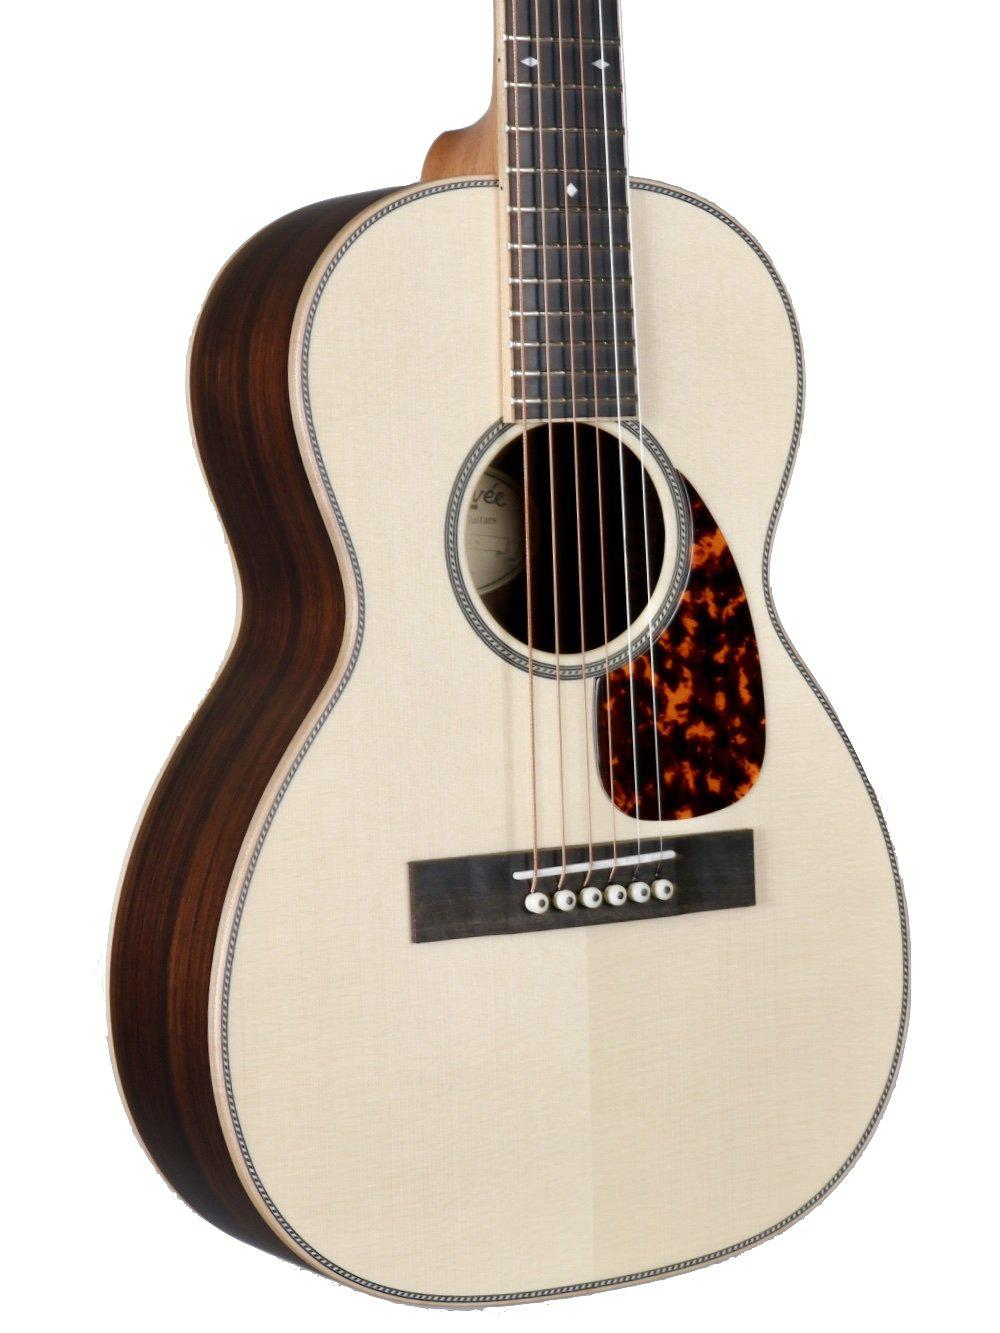 Larrivee T40 Legacy Travel Guitar Moon Spruce / Indian Rosewood #134065 - Larrivee Guitars - Heartbreaker Guitars